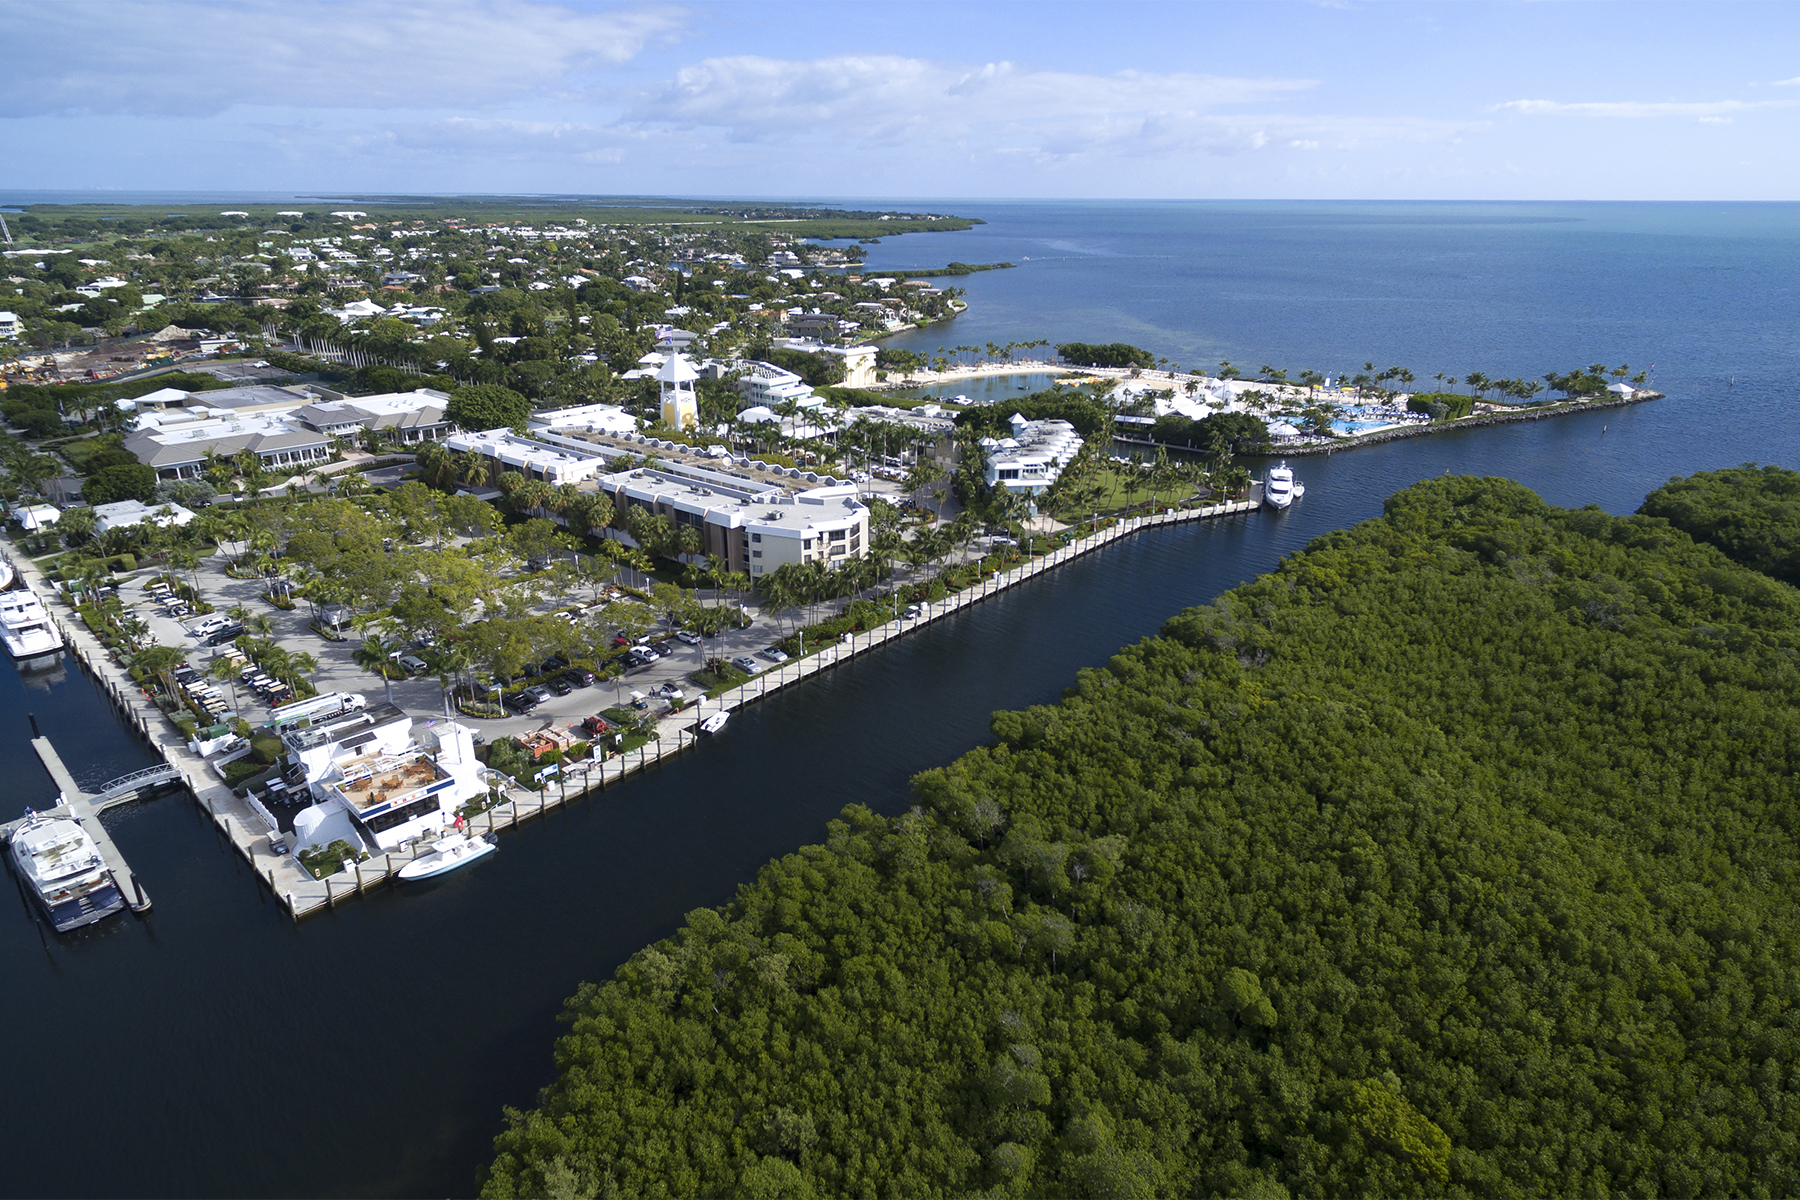 その他の住居 のために 売買 アット Unique Opportunity within the Ocean Reef Marina 201 Ocean Reef Drive Docks CS 6 & 7 Ocean Reef Community, Key Largo, フロリダ, 33037 アメリカ合衆国